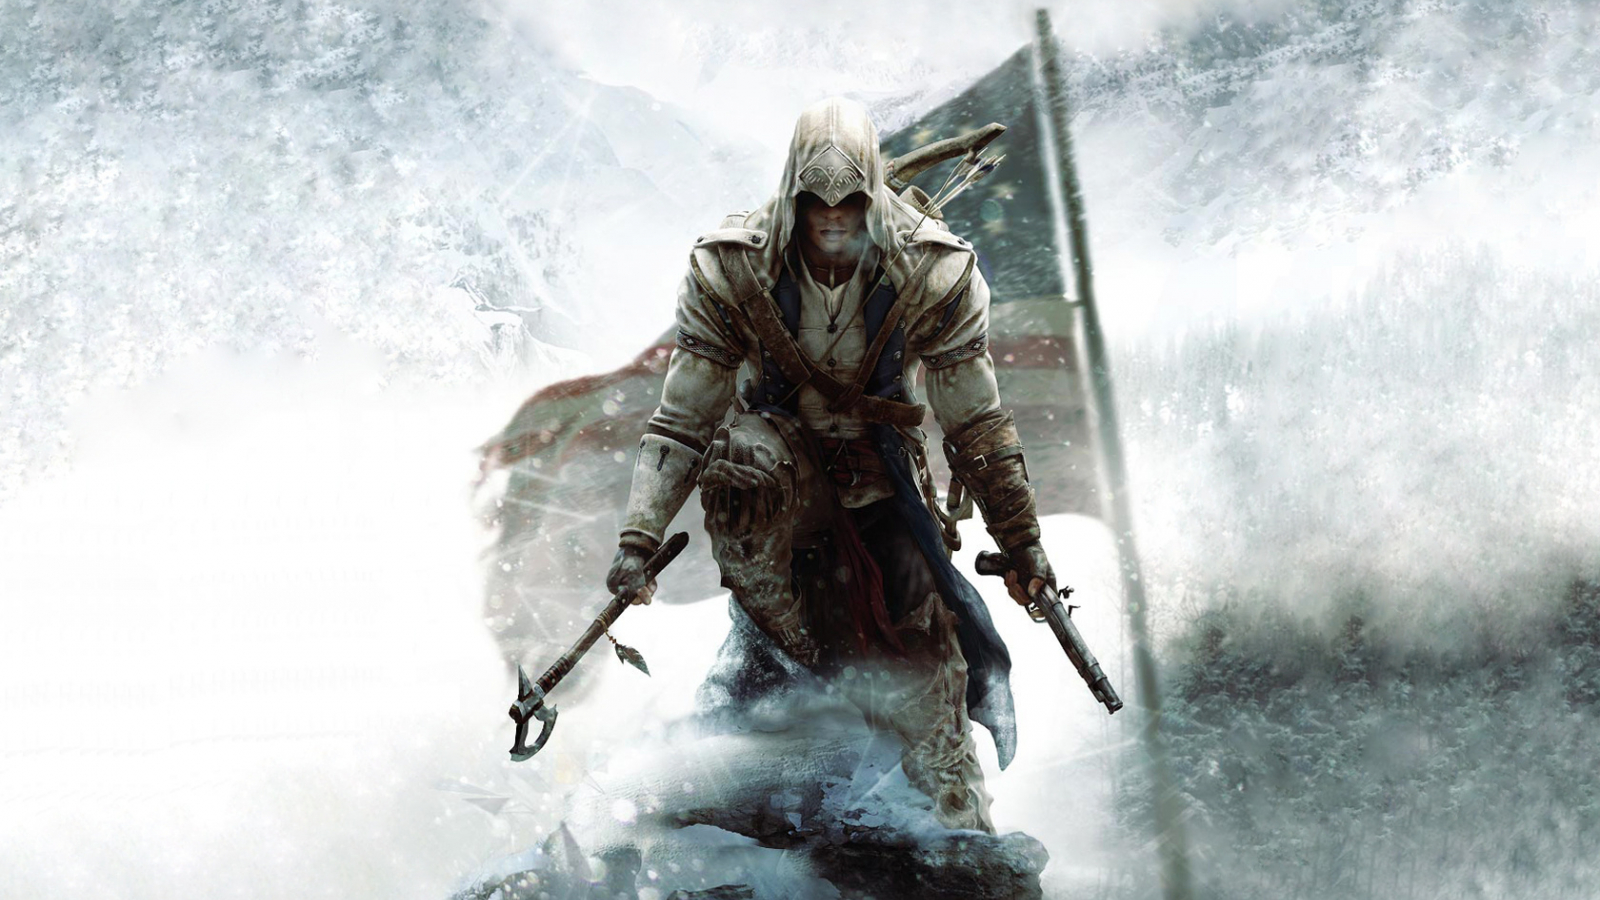 Free Download Assassins Creed 3 Wallpaper Konnor Hd Desktop